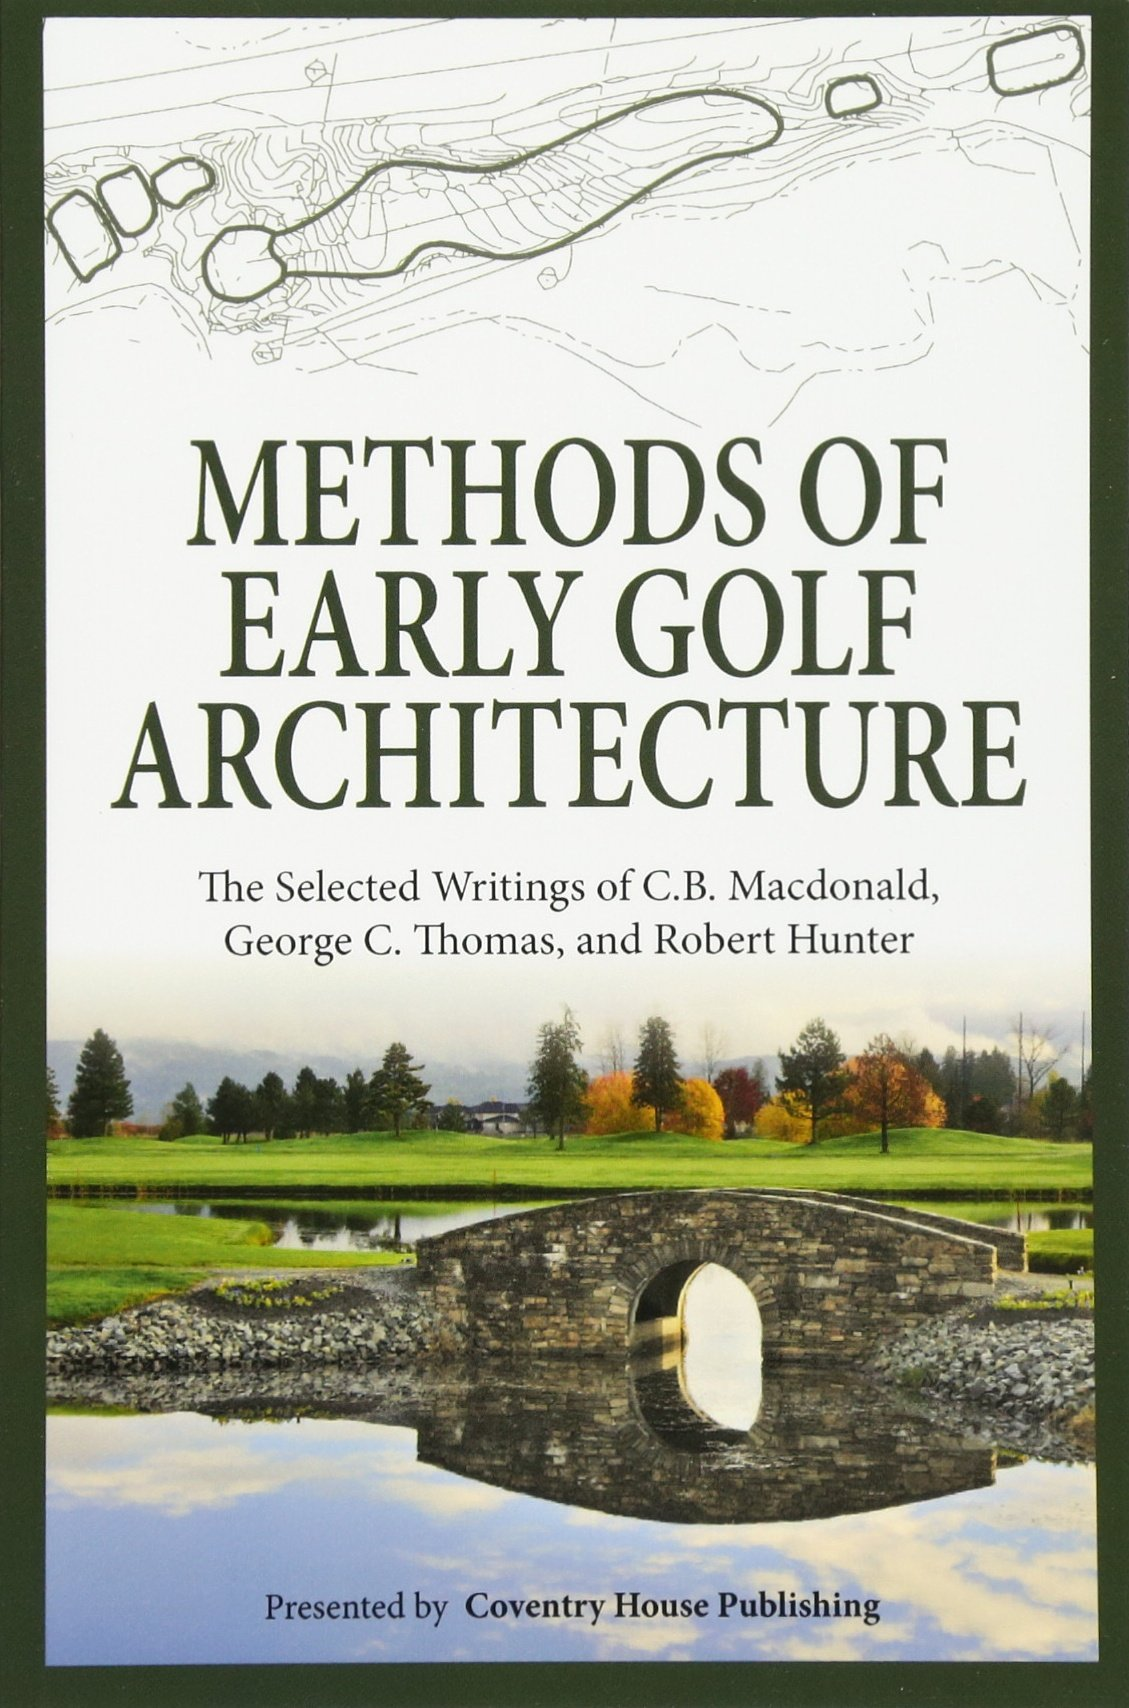 Image OfMethods Of Early Golf Architecture: The Selected Writings Of C.B. Macdonald, George C. Thomas, Robert Hunter: Volume 2